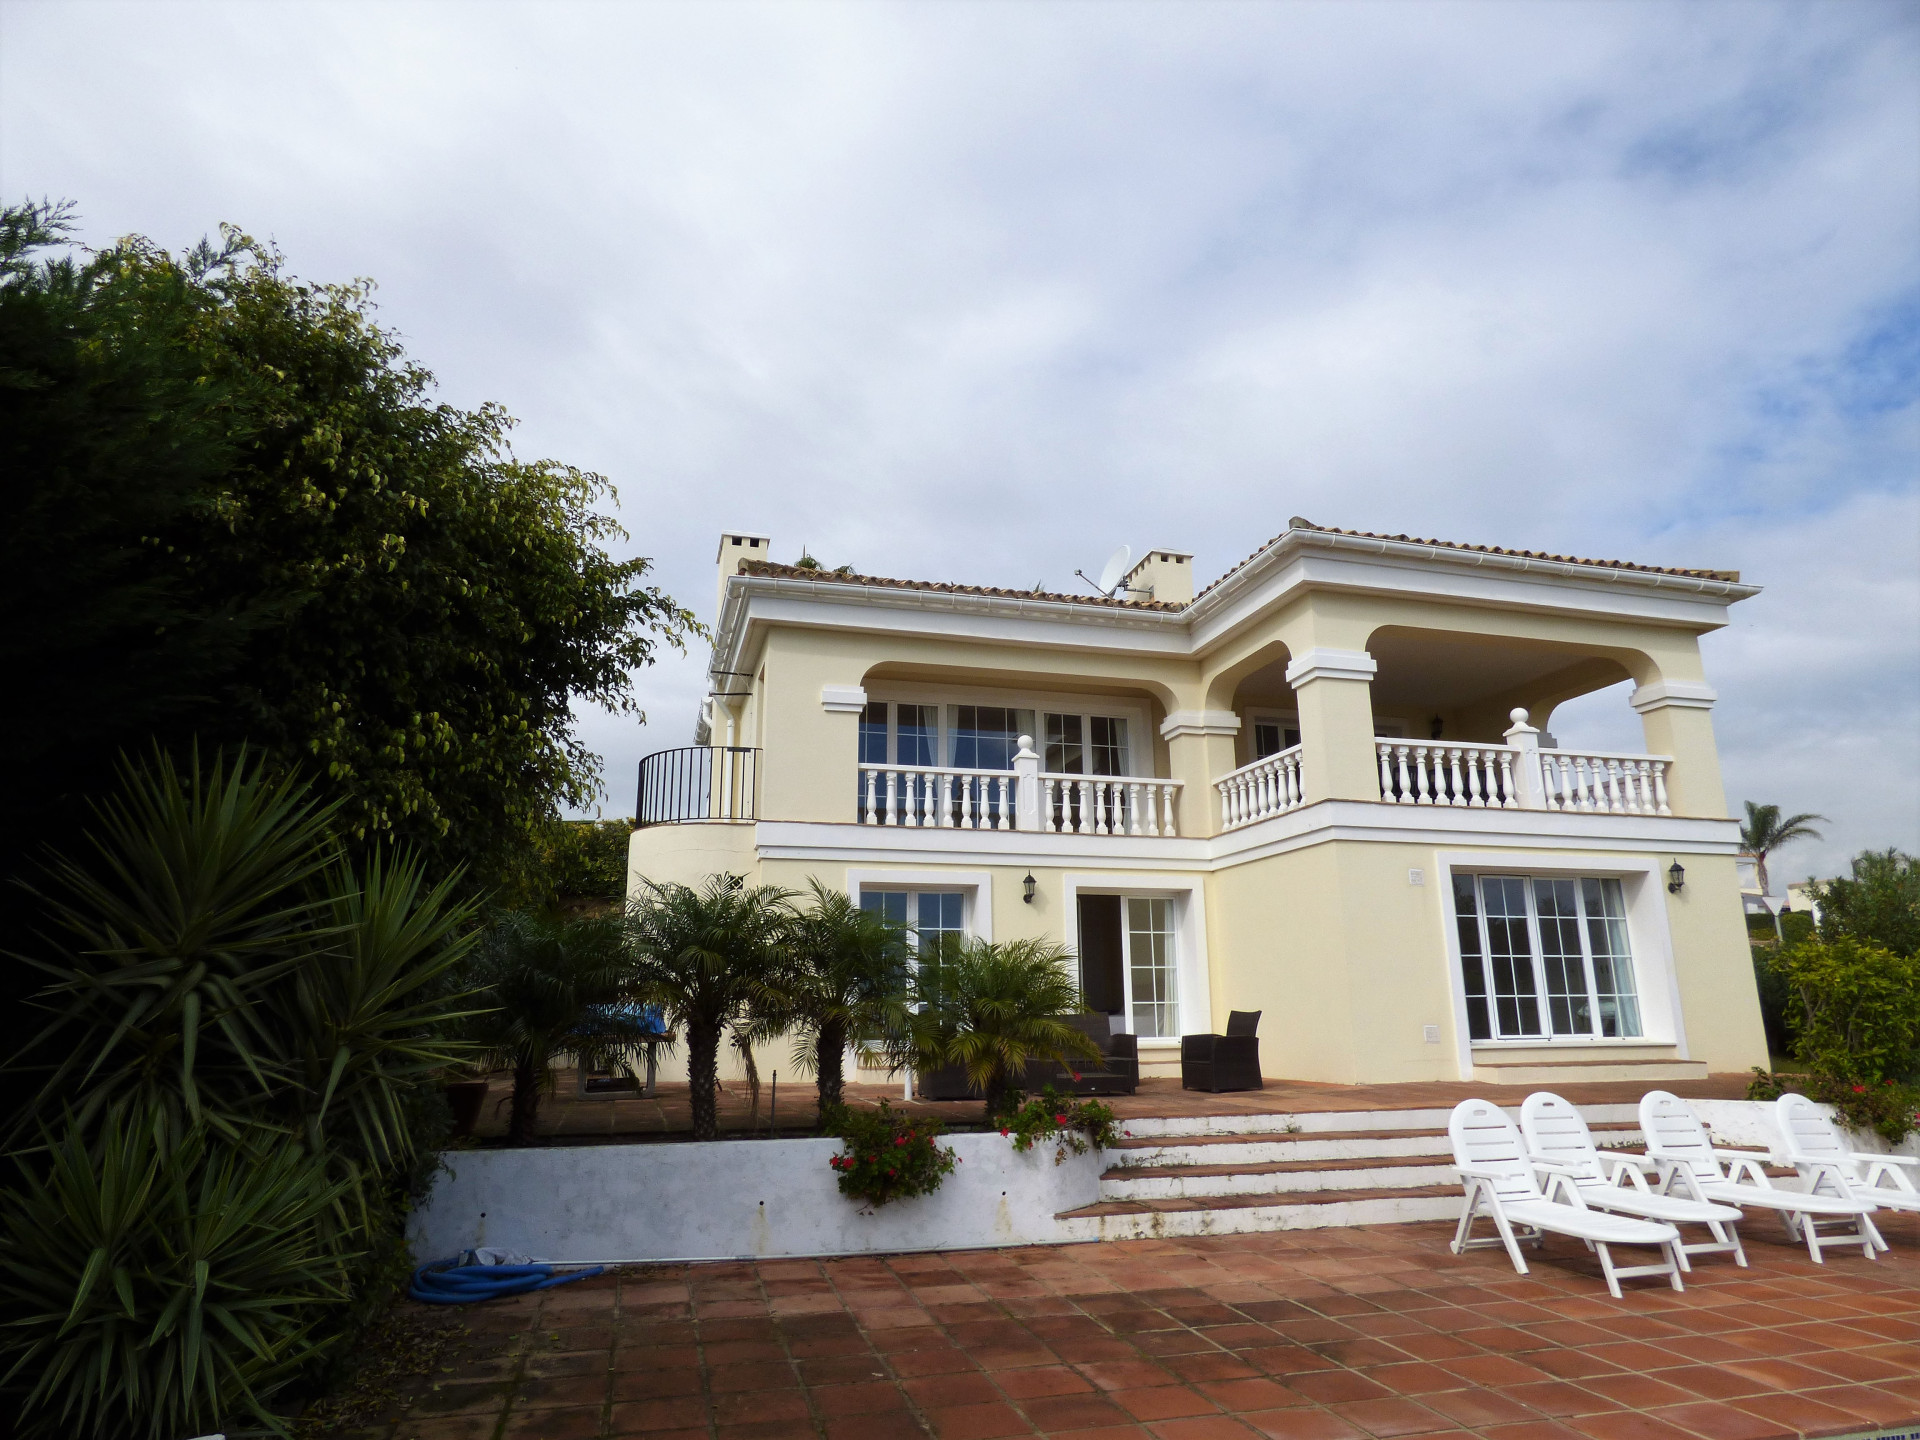 Lovely villa with four bedrooms private swimming pool and beautiful views of the sea